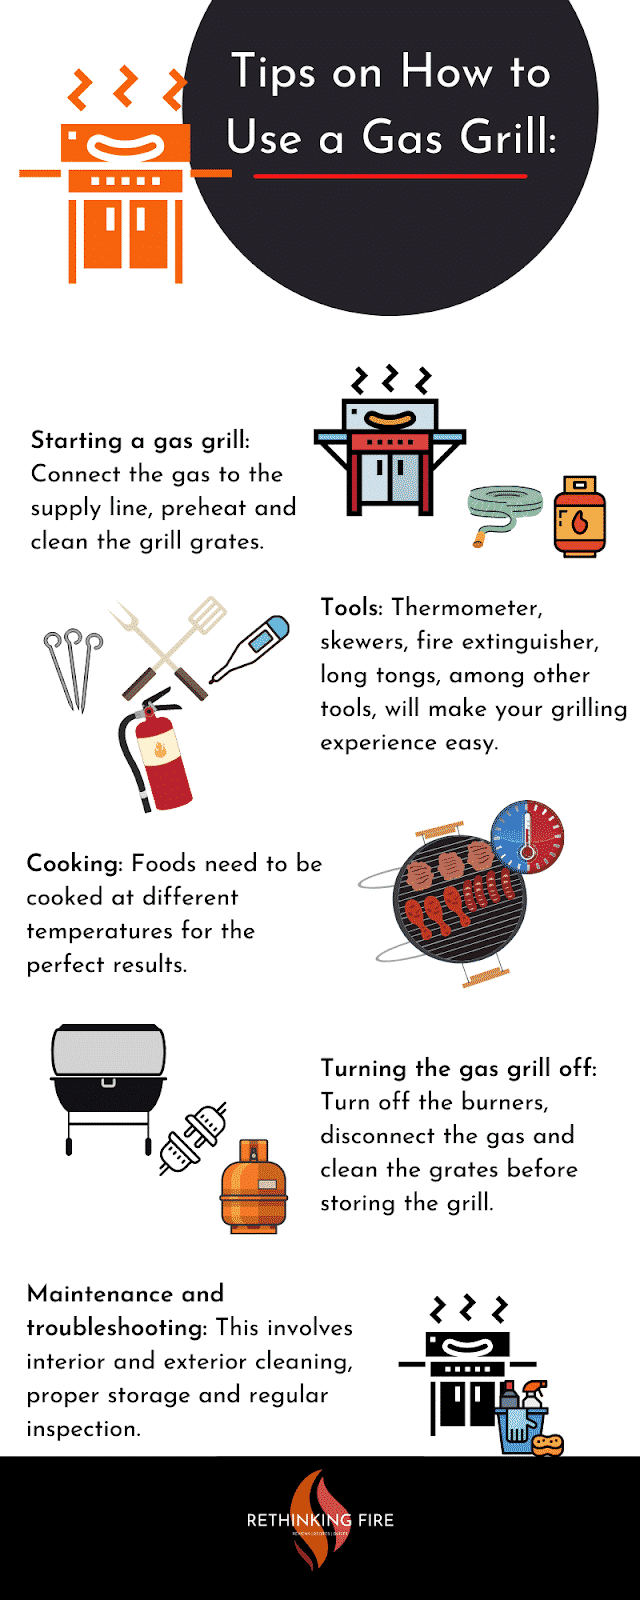 infographic on How to Use a Gas Grill